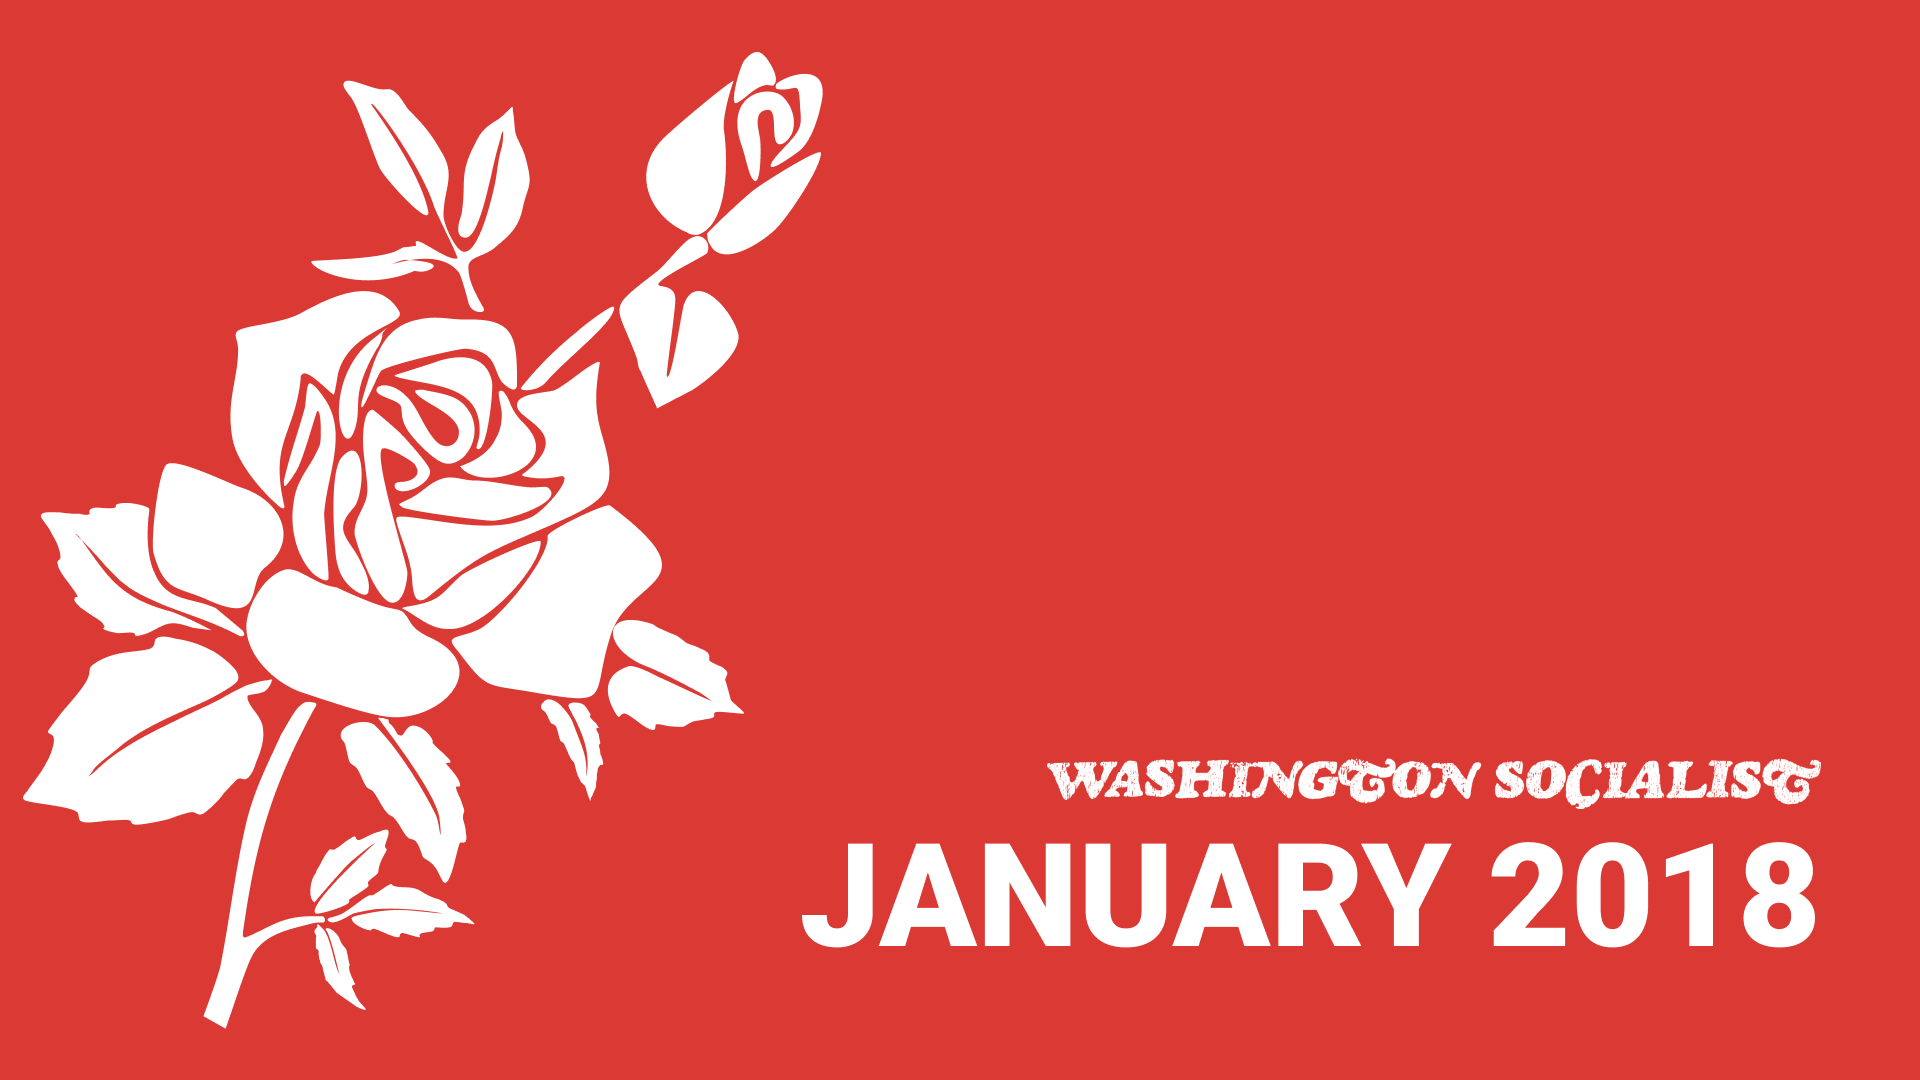 Washington Socialist Cover, January 2018